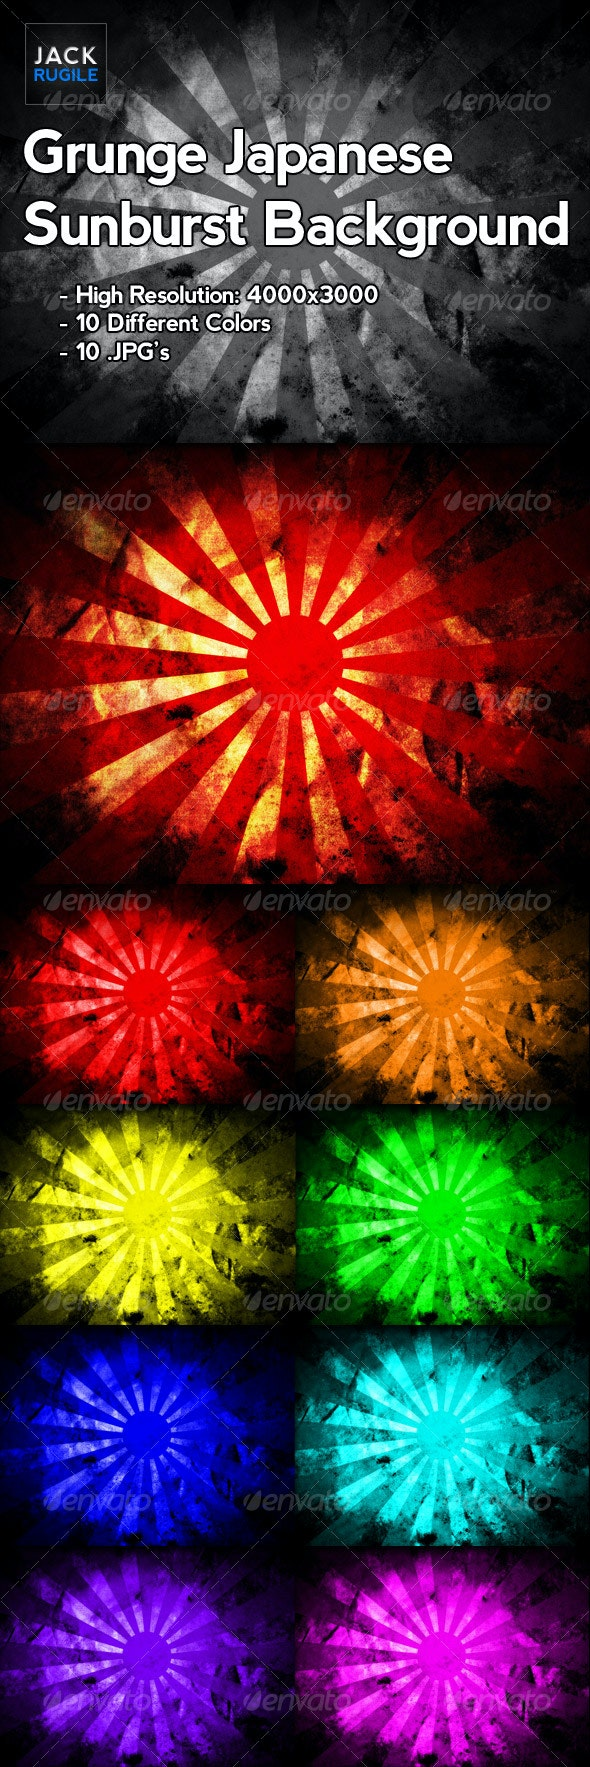 Grunge Japanese Sunburst Background - Abstract Backgrounds